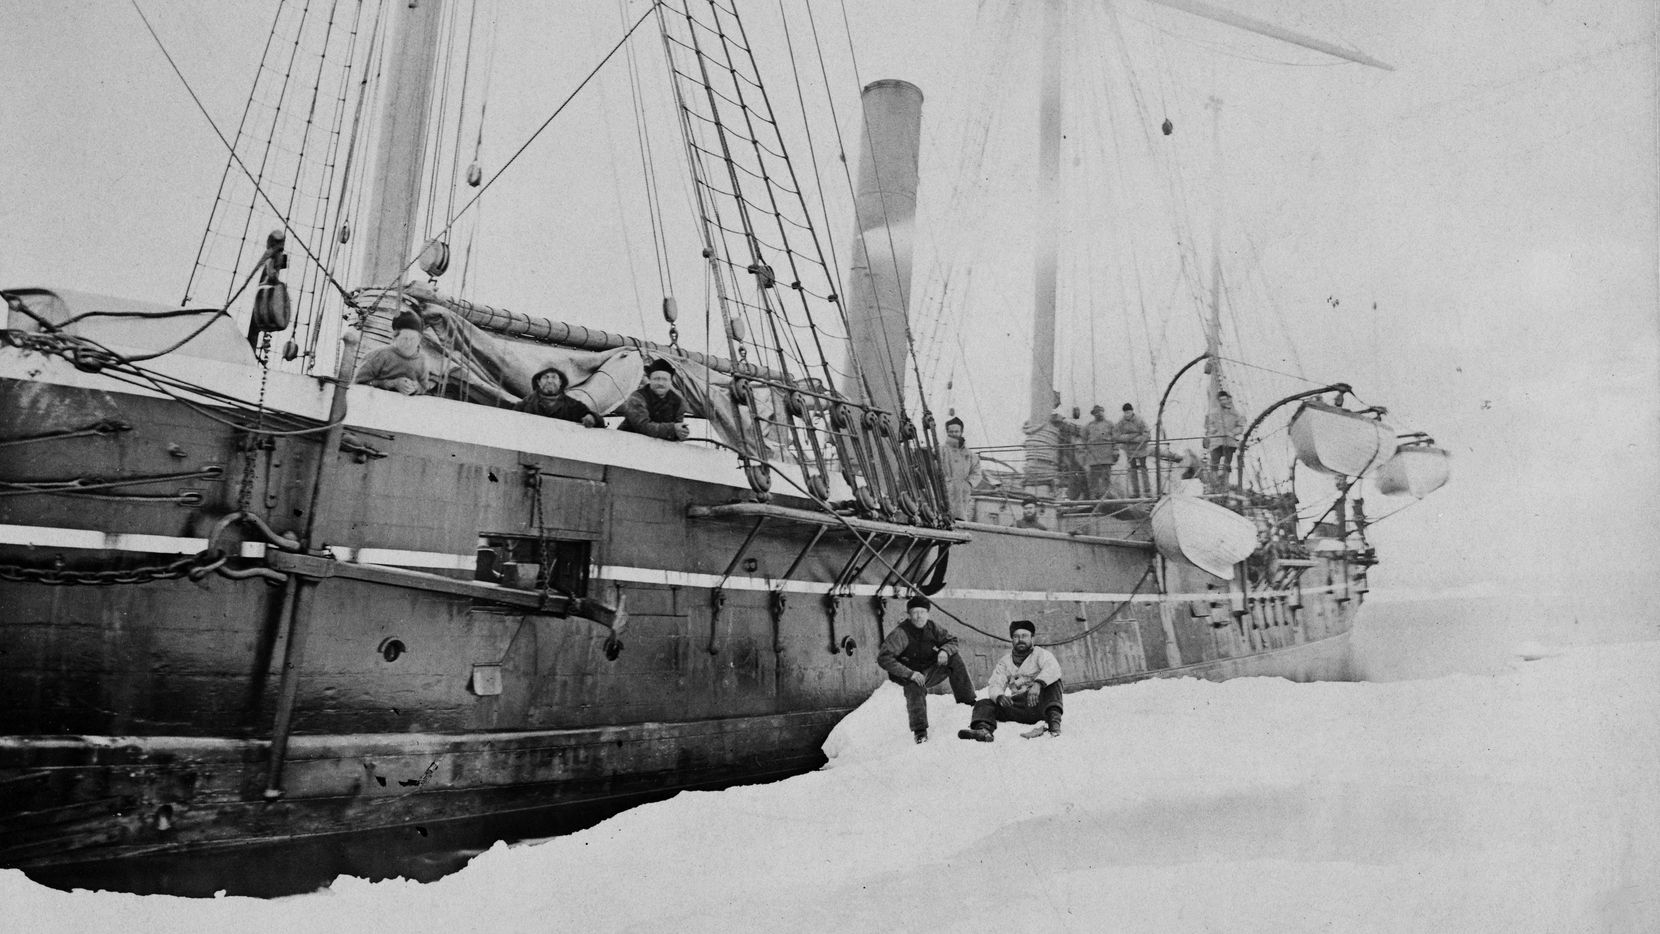 The Jeanette, then known as the Pandora, photographed in Greenland in the mid-1870s. From 'In the Kingdom of Ice,' by Hampton Sides.